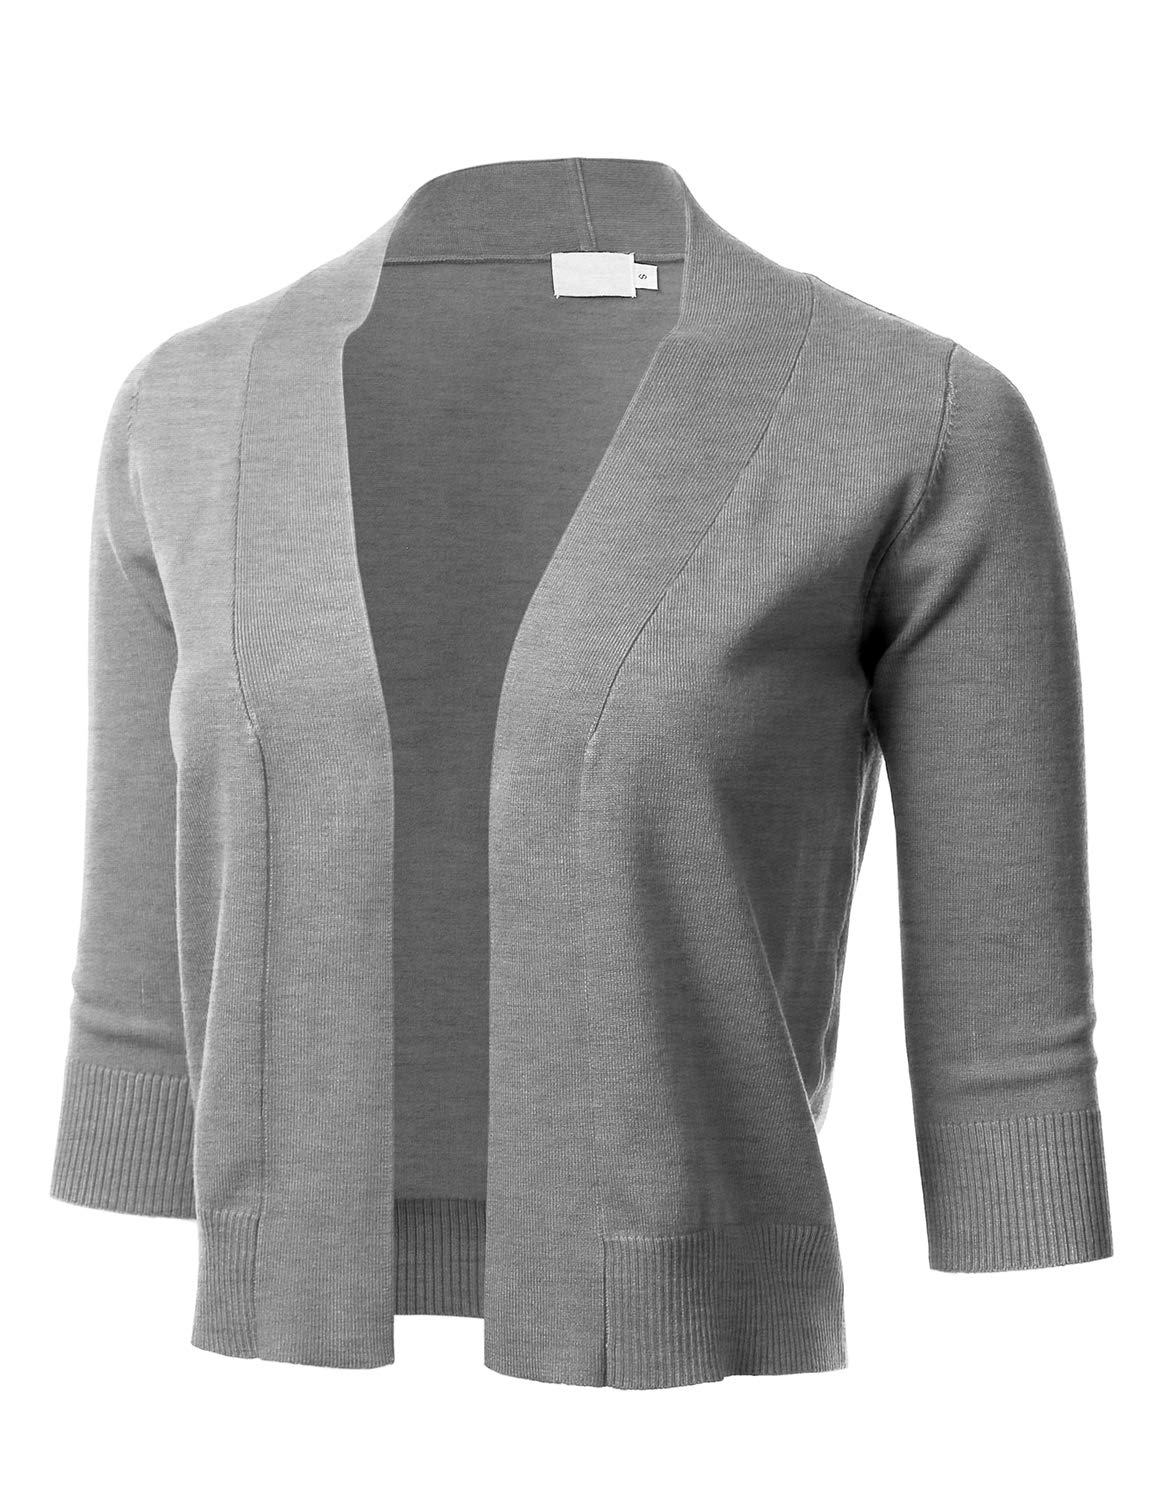 Best Rated in Women s Cardigans   Helpful Customer Reviews - Amazon.com 97c177f7a